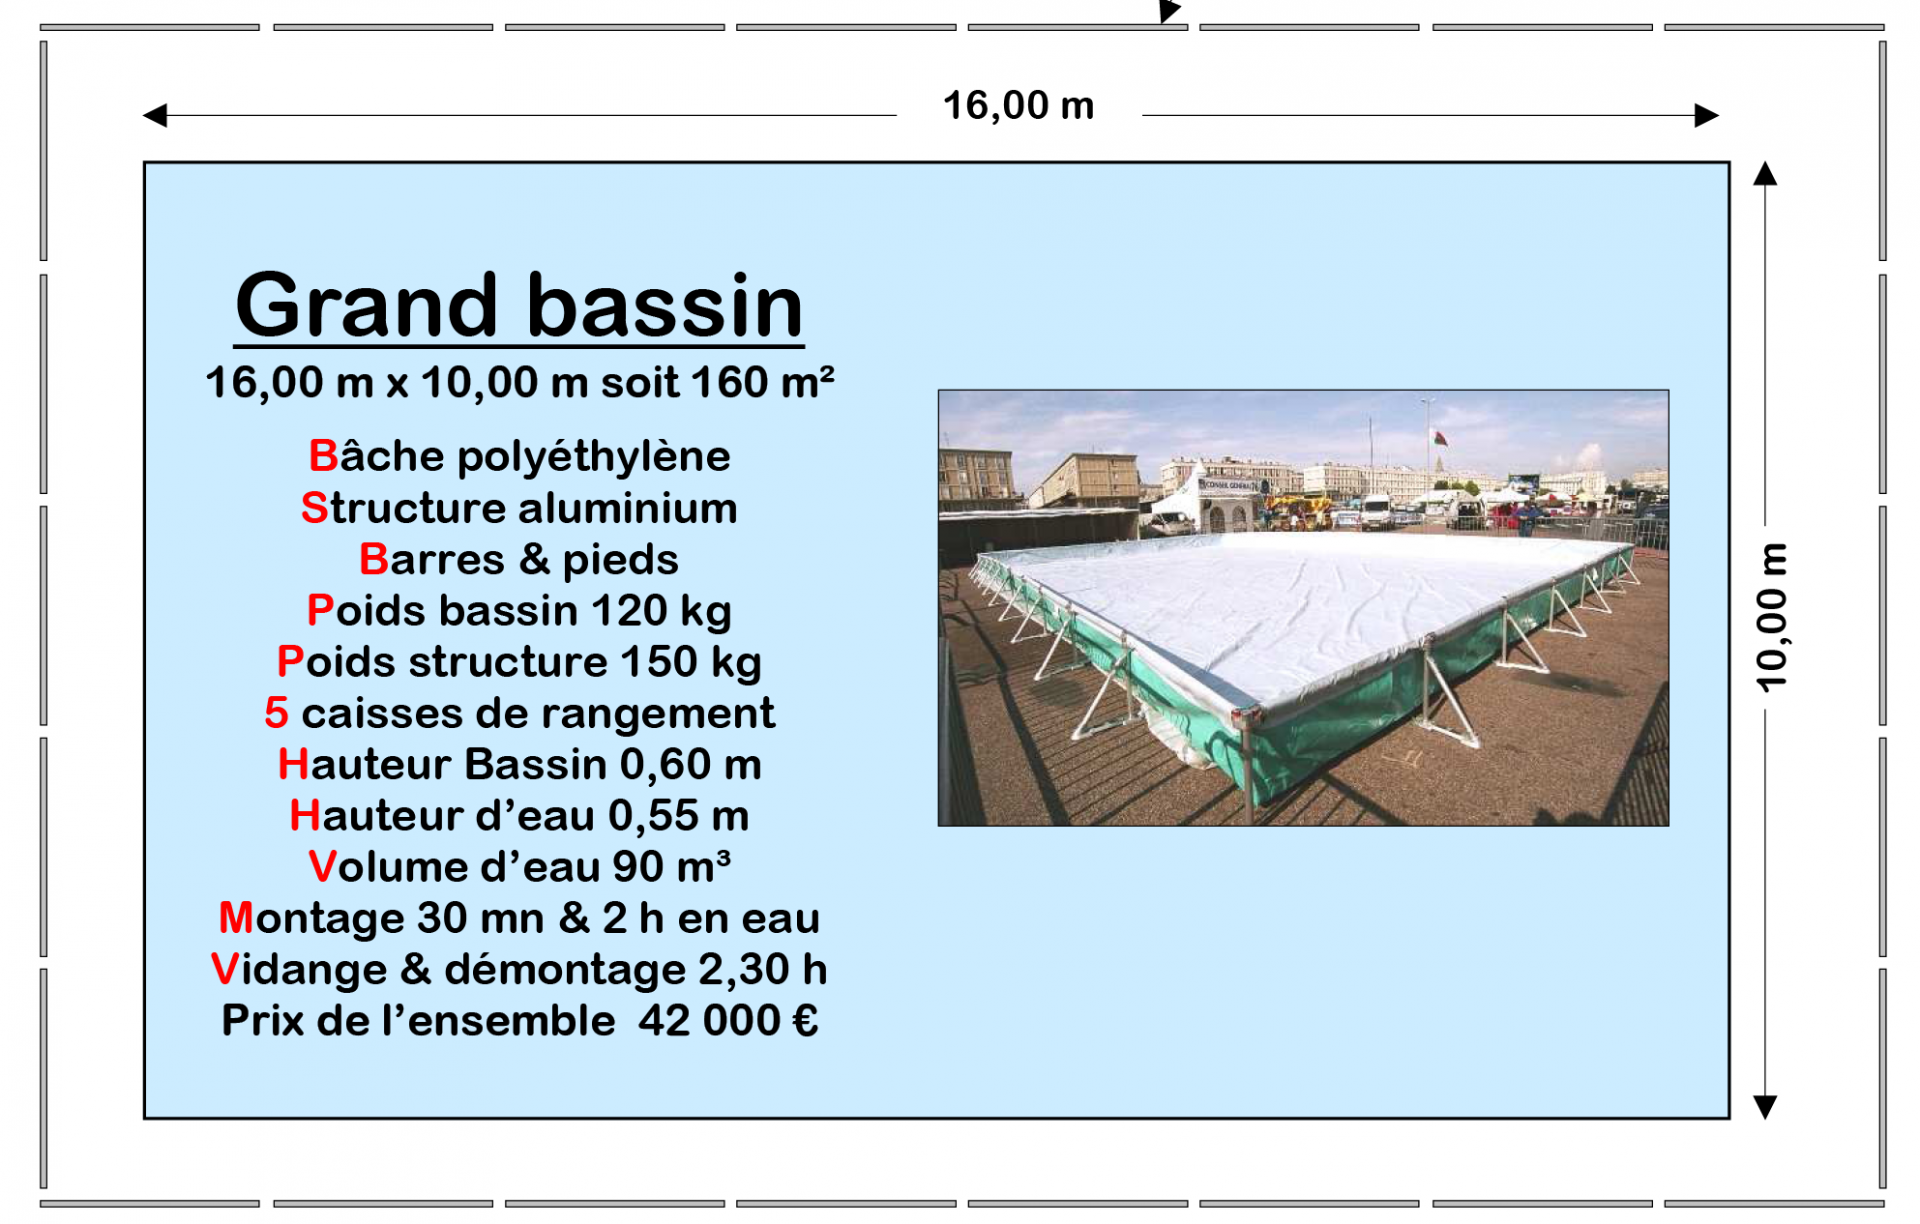 Grand bassin taille